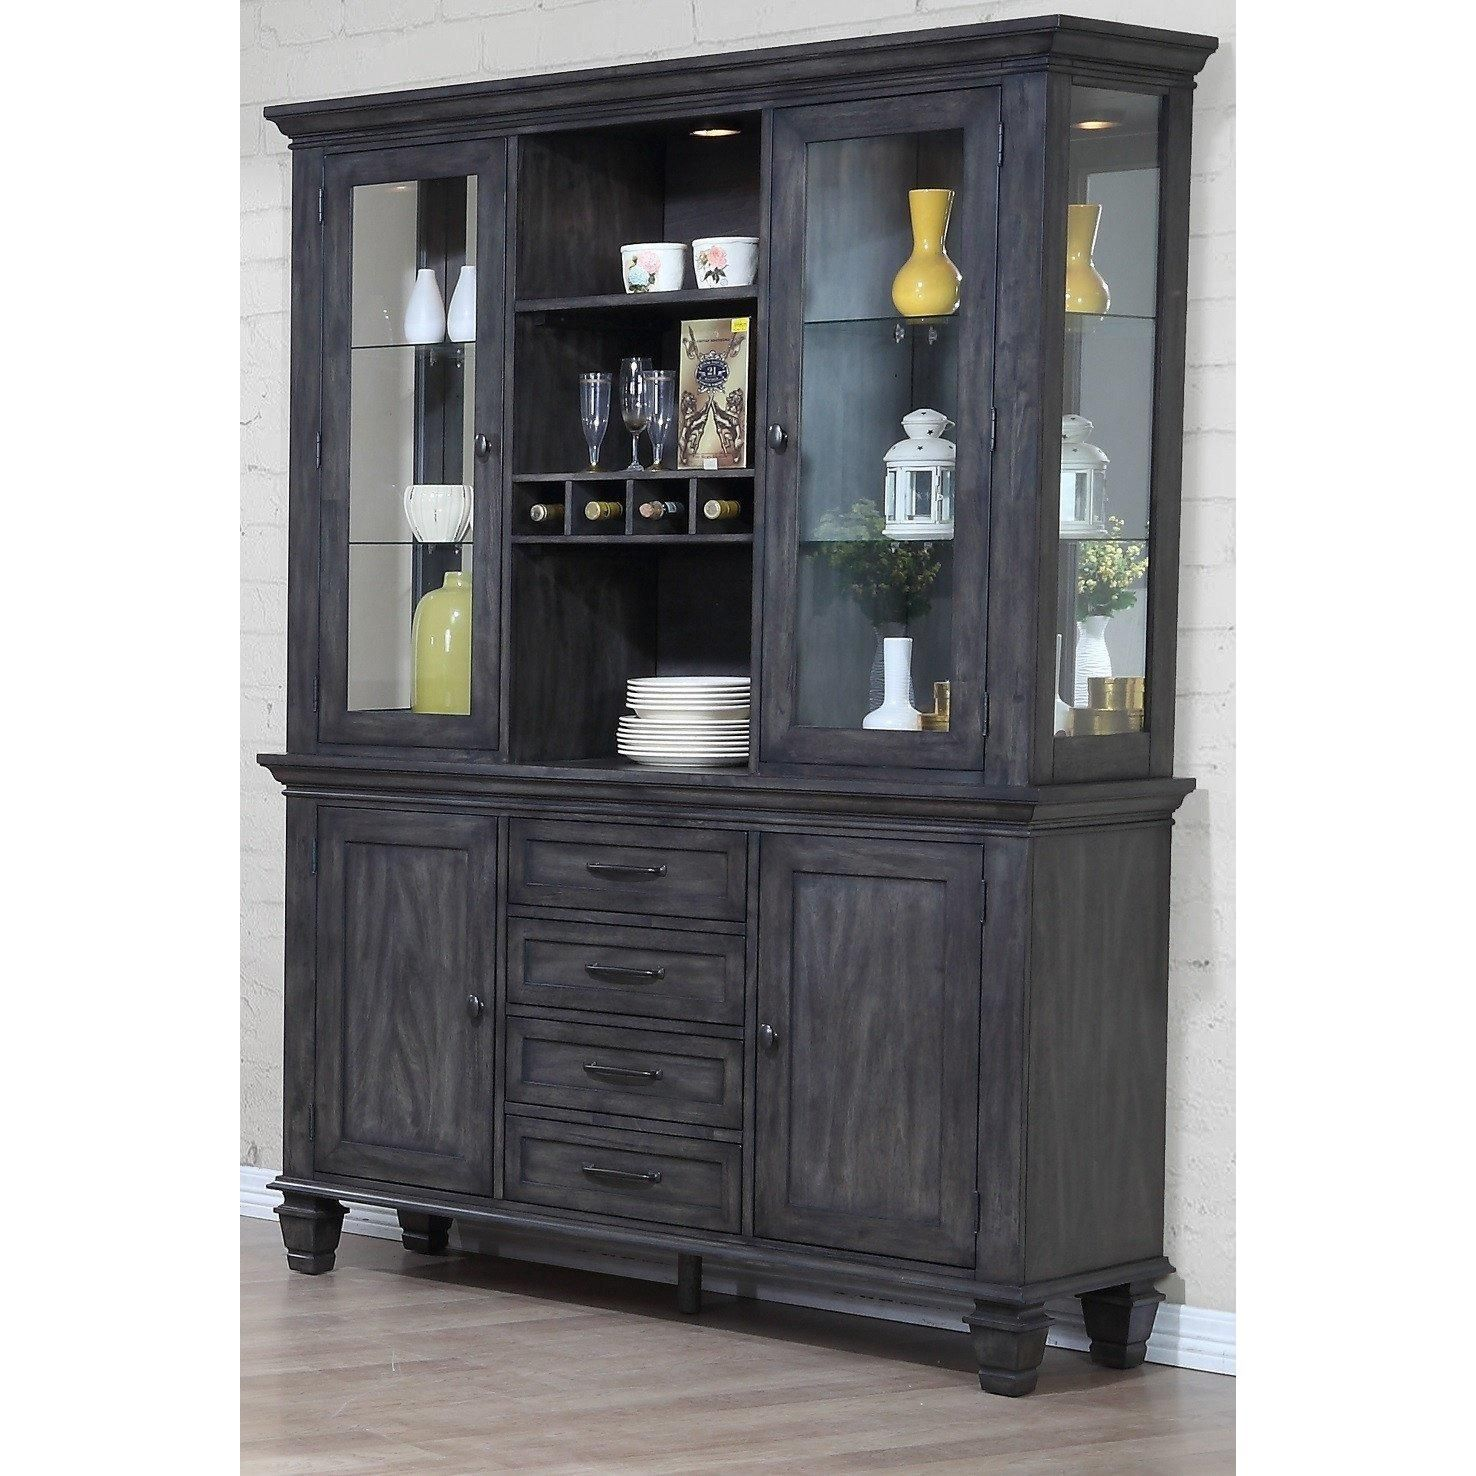 Sunset Trading Shades of Gray China Cabinet